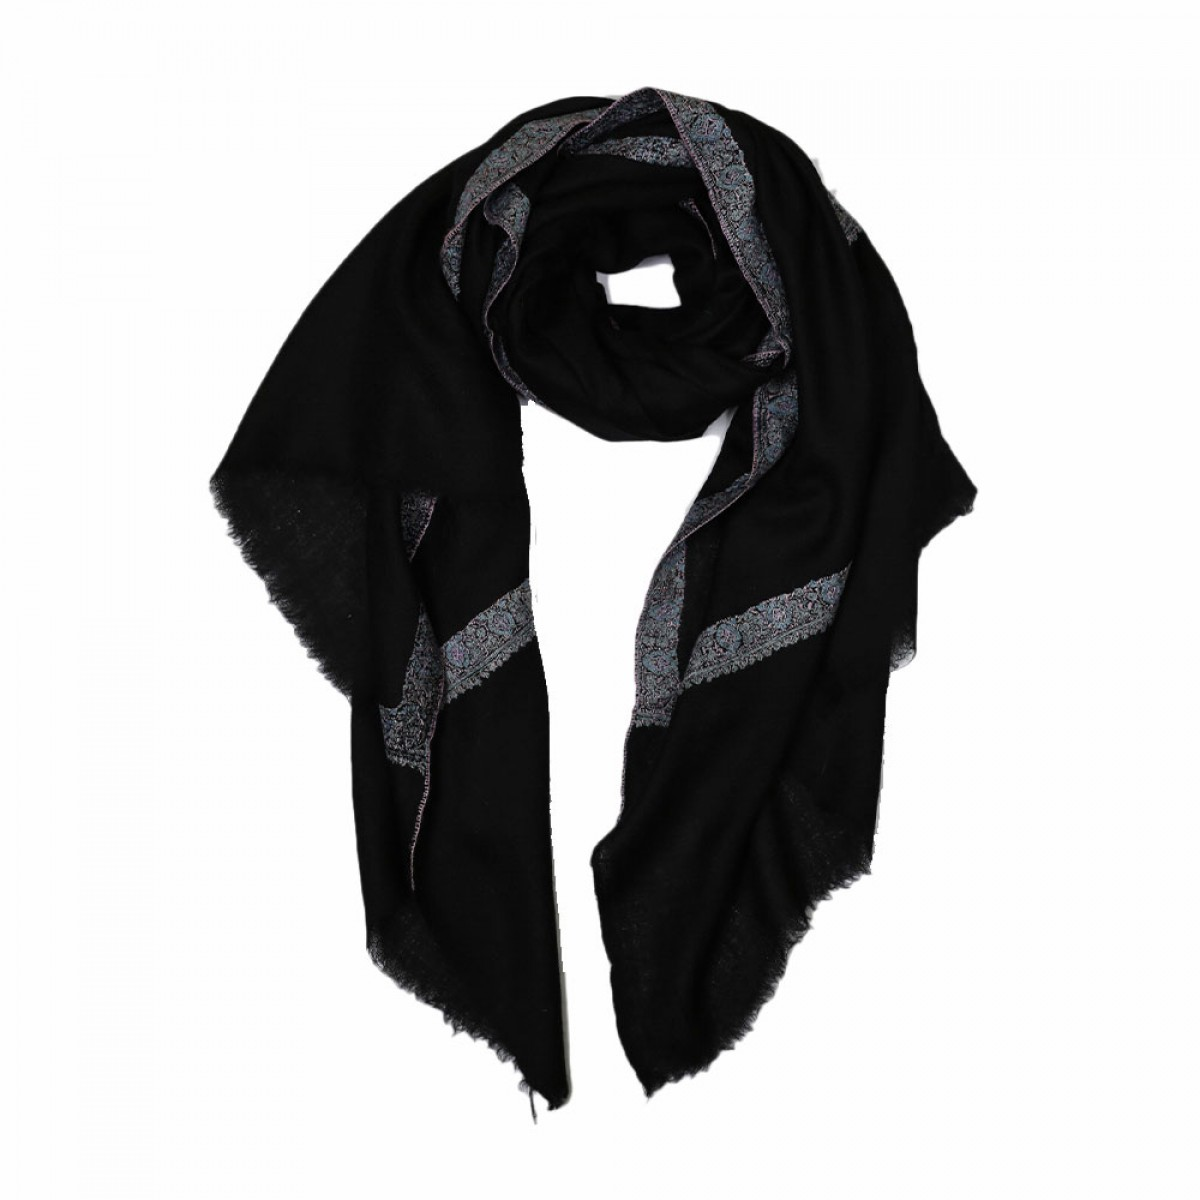 Embroidered Handloom Pashmina Stole - Black